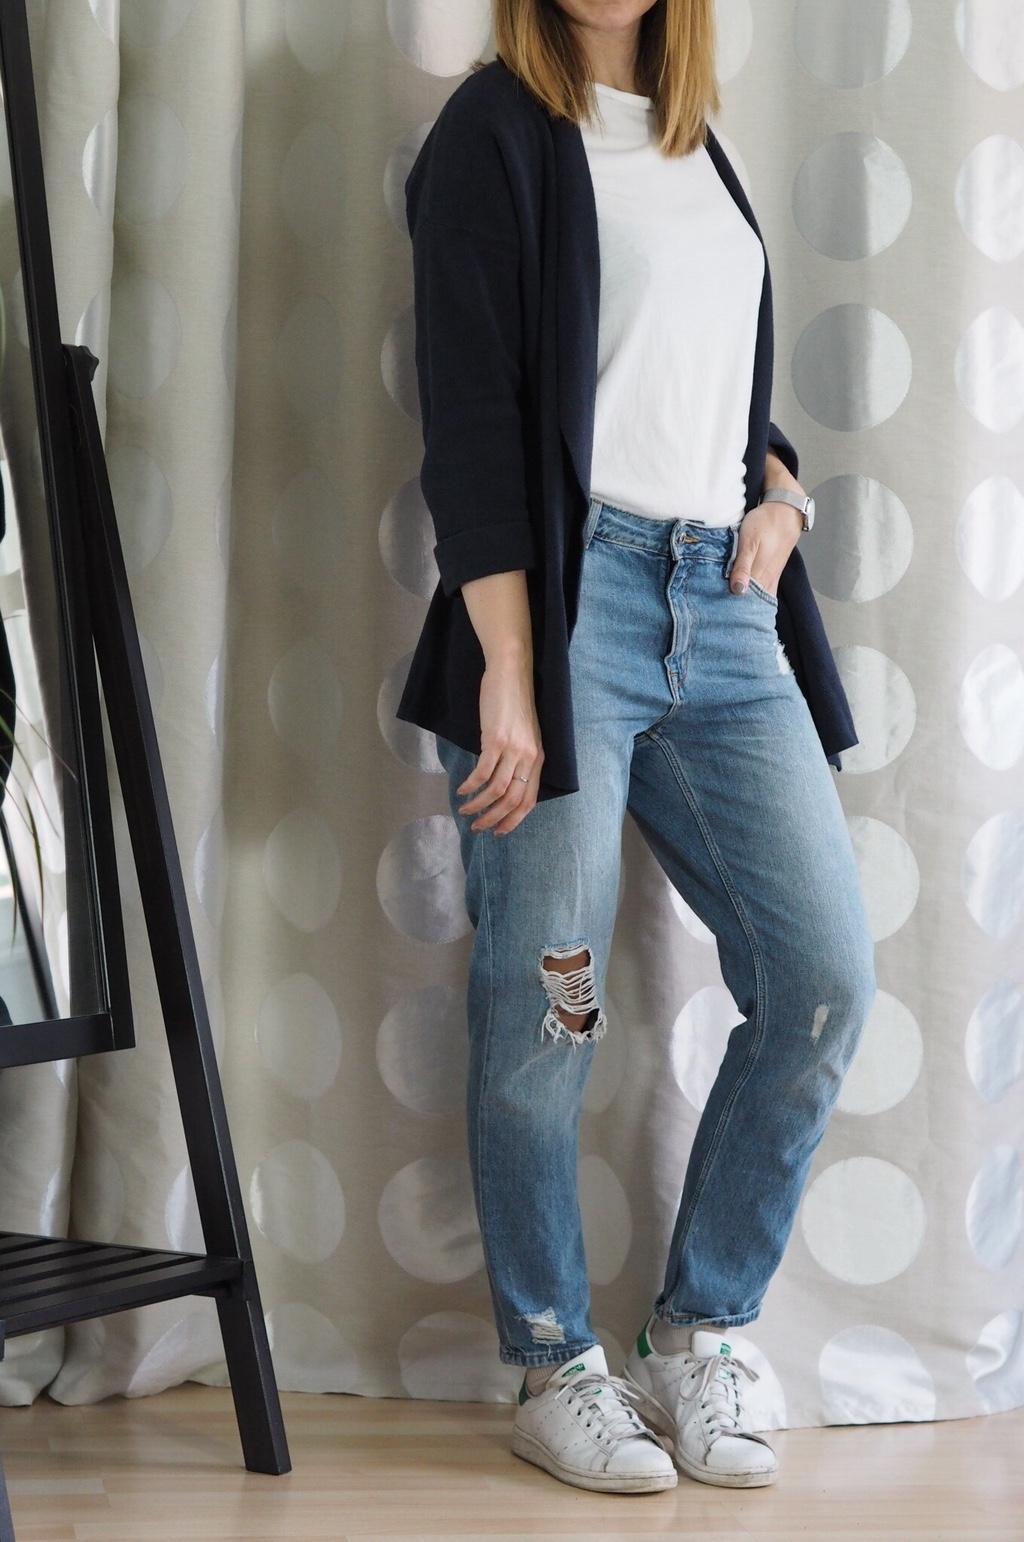 Girlfriend Jeans Cardigan Outfit